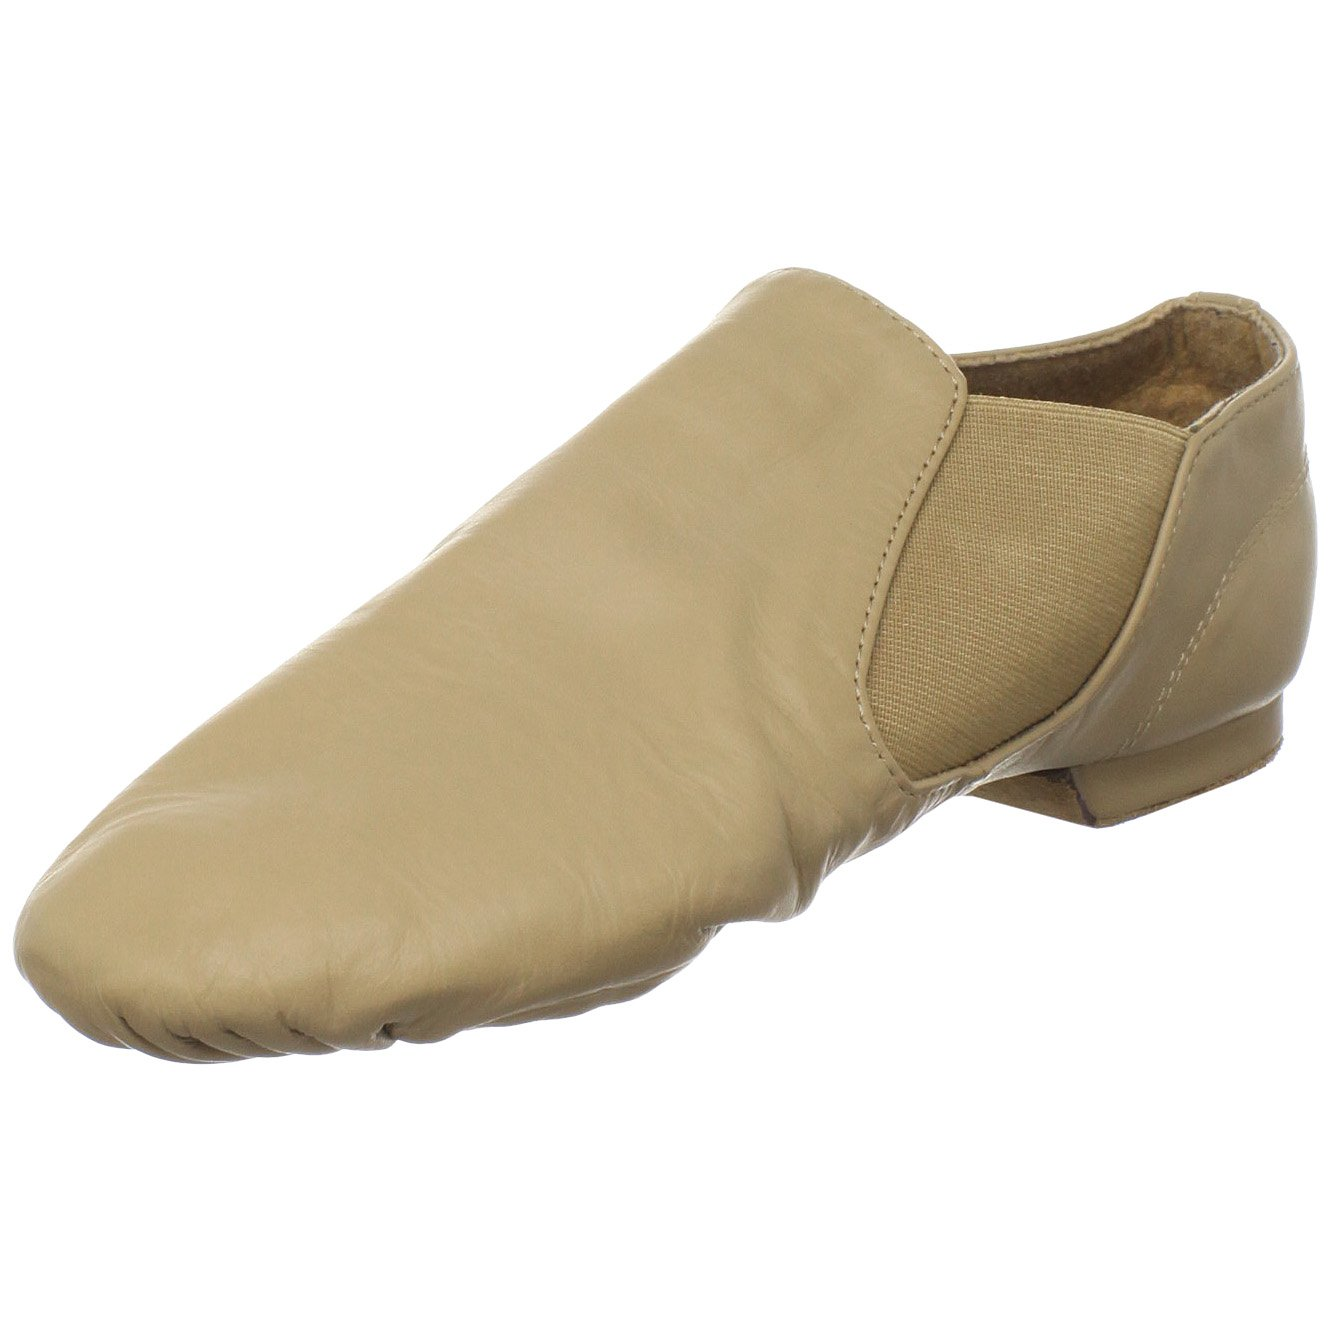 Sansha Moderno Leather Slip On Jazz Shoe,Tan,18 M US Women's/14 M US Men's by Sansha